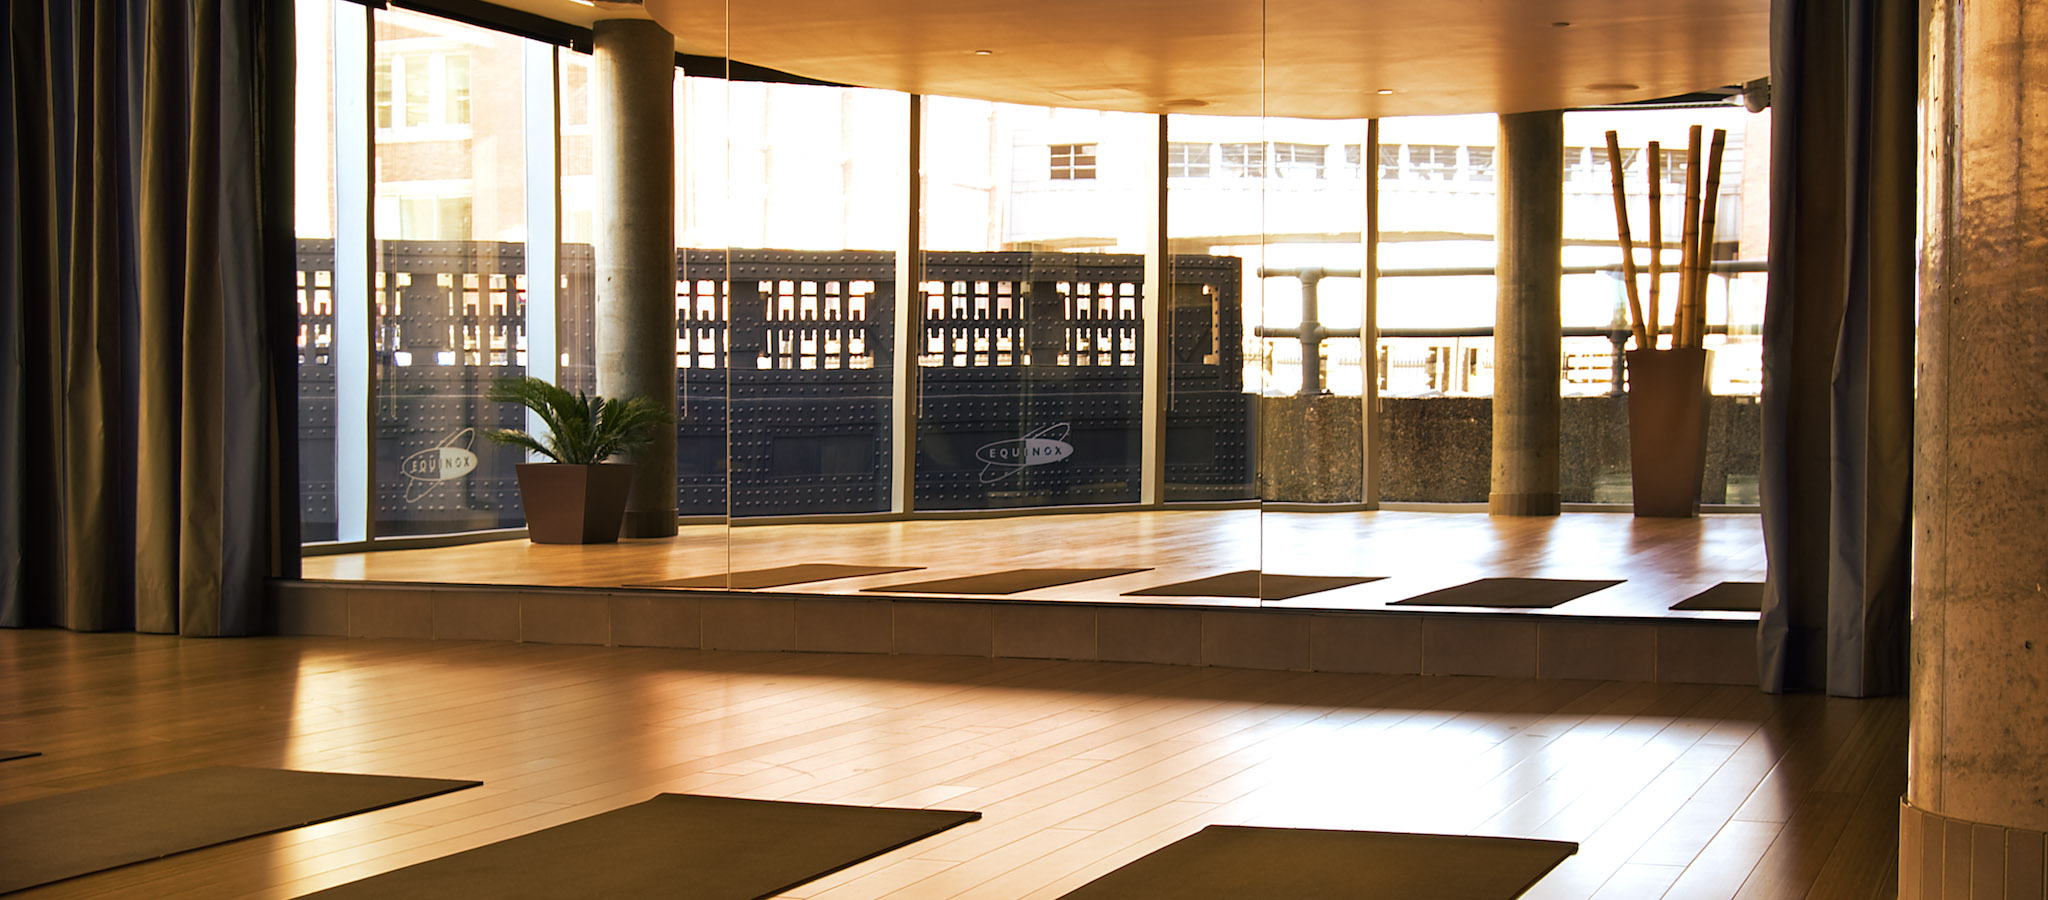 Gyms In Chelsea Nyc Fitness Clubs With Pilates Yoga Classes